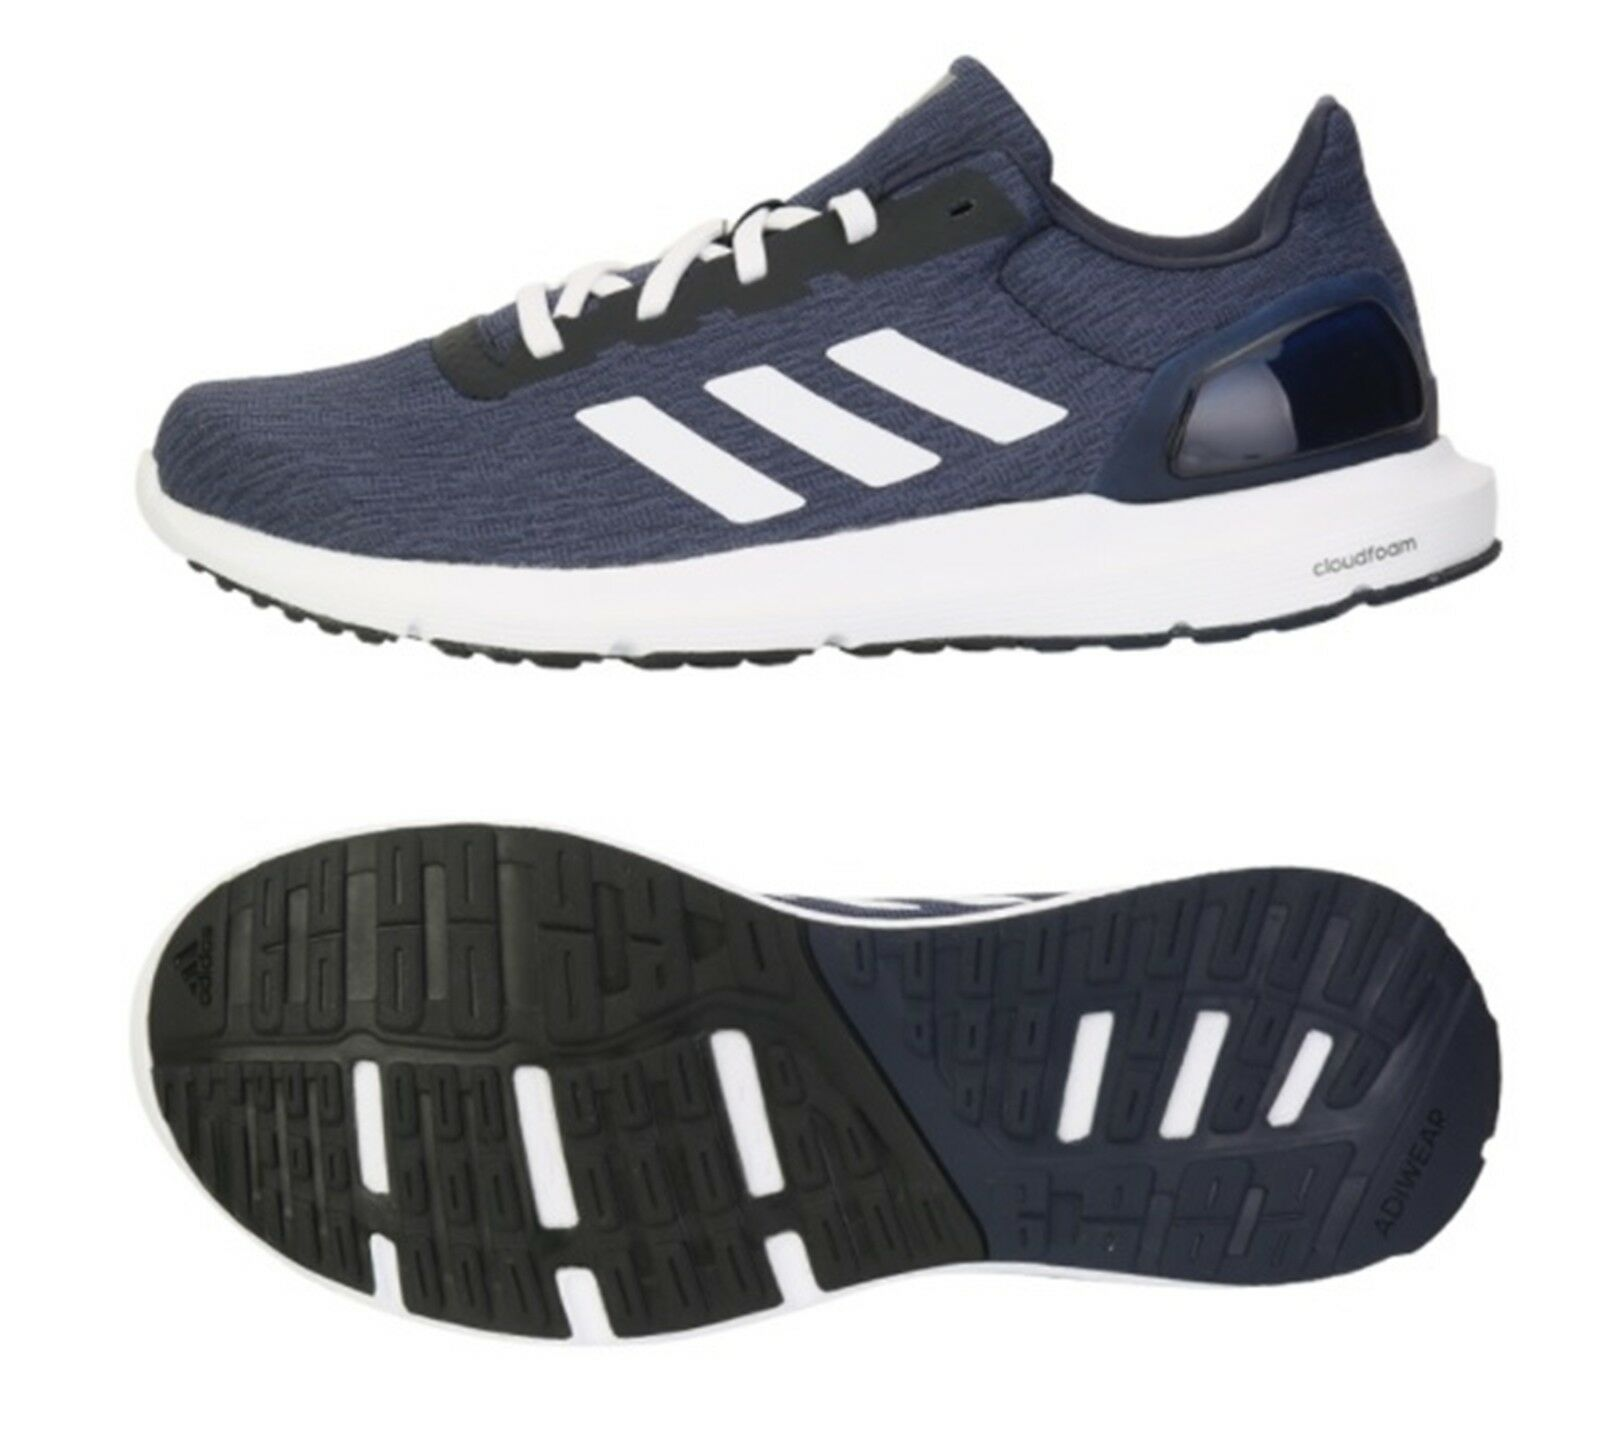 Adidas Men Cosmic 2 Training shoes Running bluee Navy Sneakers GYM shoes BB3589